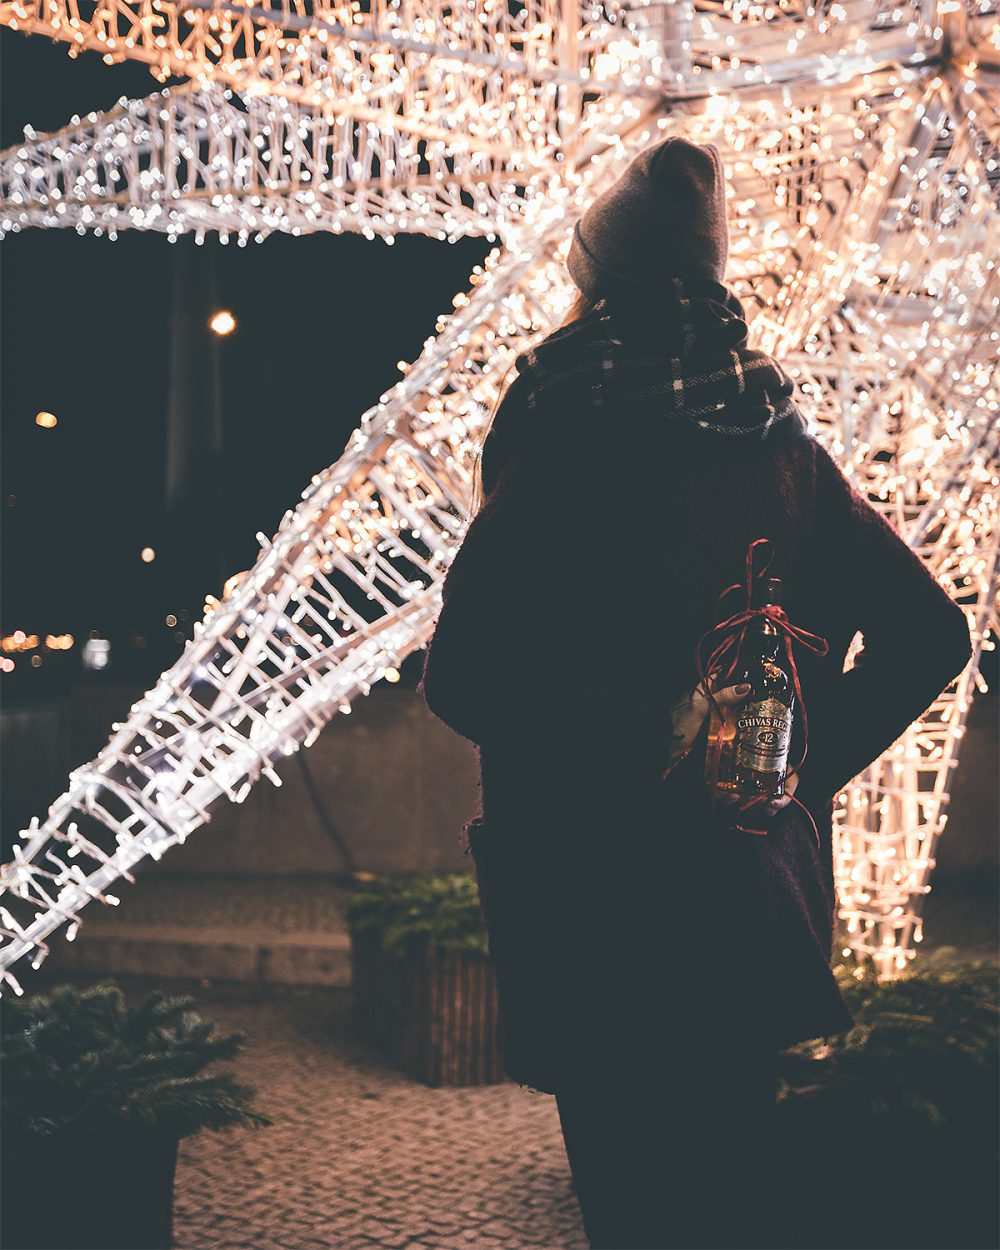 Woman holding bottle of Chivas behind her back and stnading infornt of a huge Christmas star light, shot by influencer Zerletti